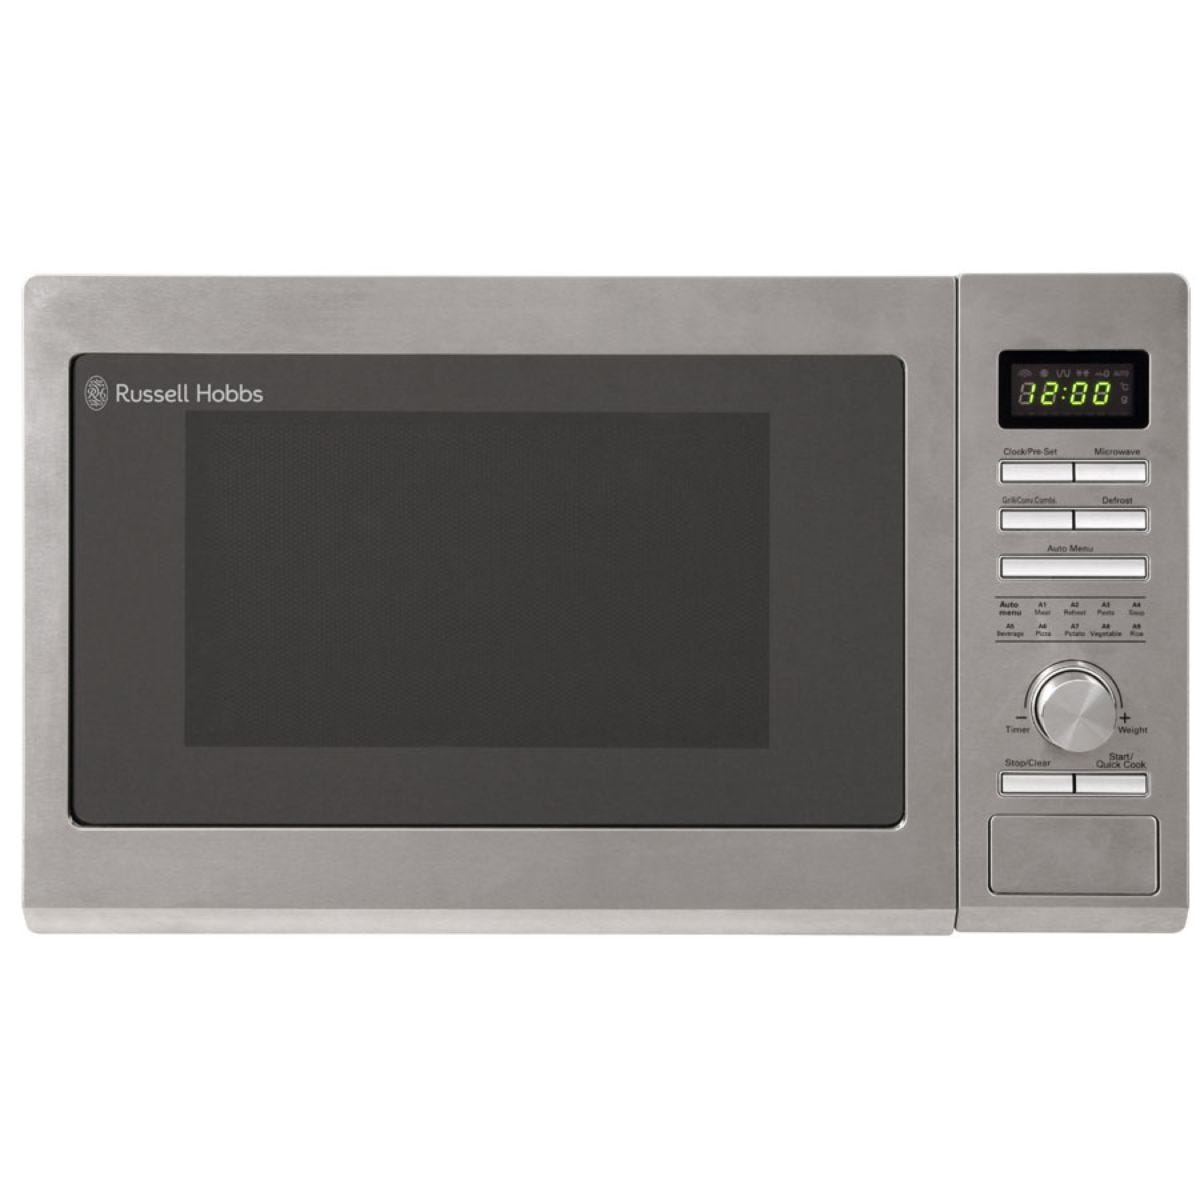 Russell Hobbs RHM3002 1100W 30L Combination Microwave - Silver